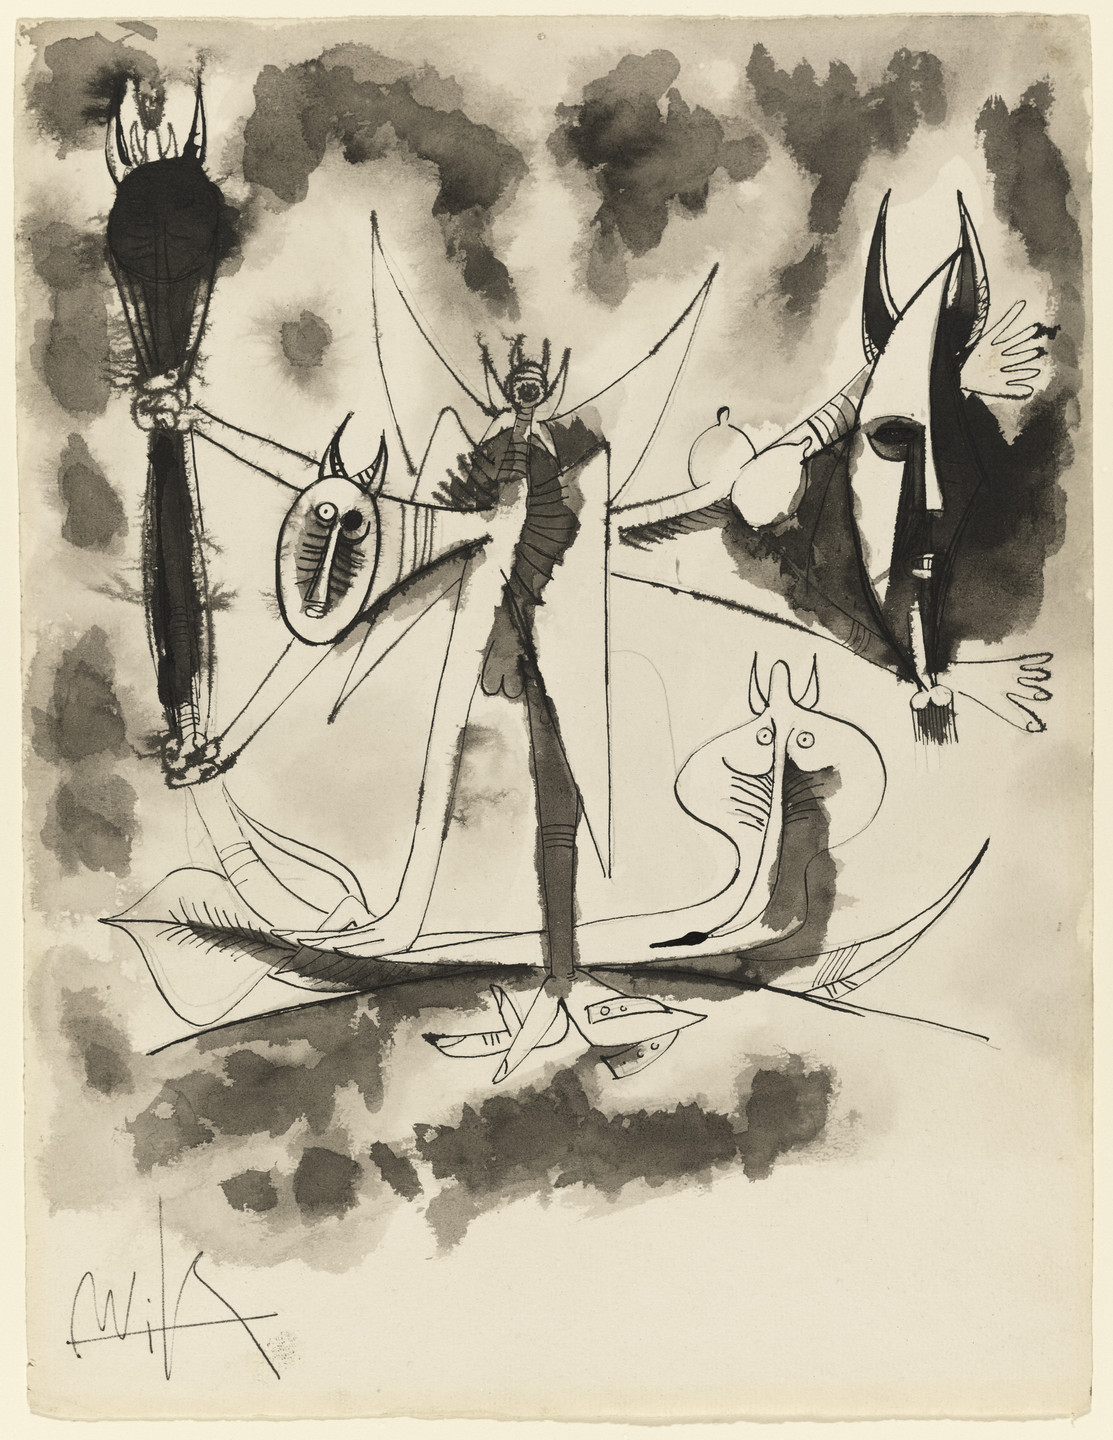 Wifredo Lam. Untitled. 1946